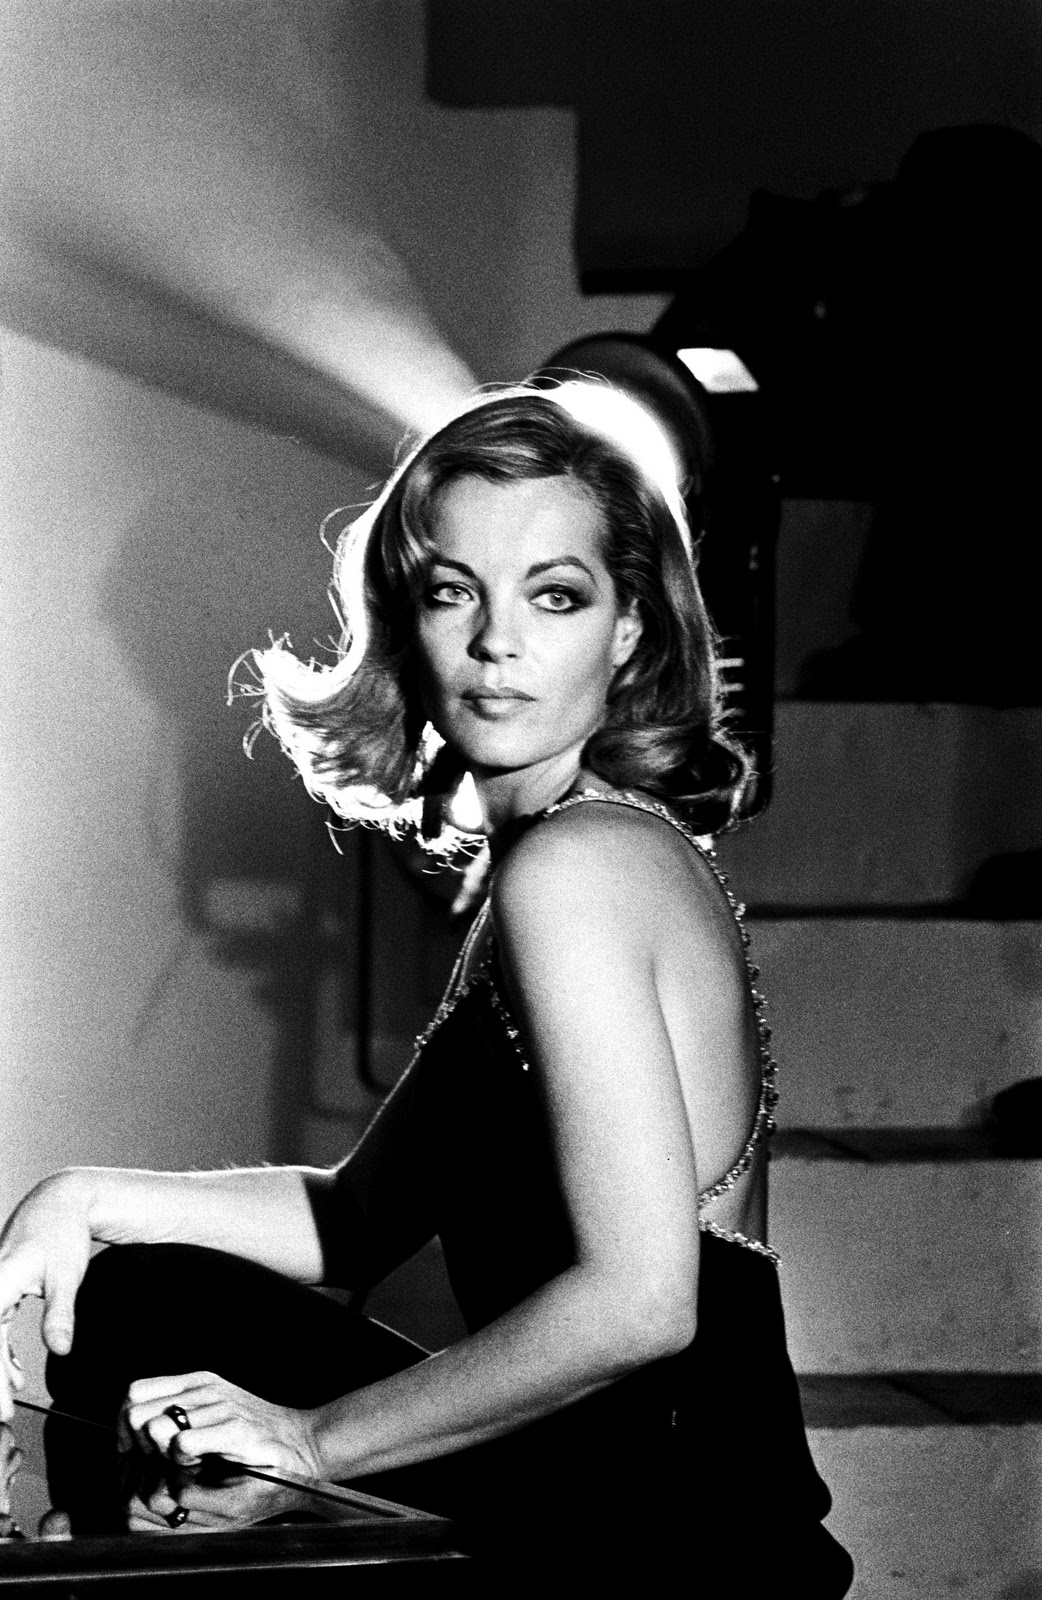 romy schneider a tribute to an unforgettable actress huffpost. Black Bedroom Furniture Sets. Home Design Ideas